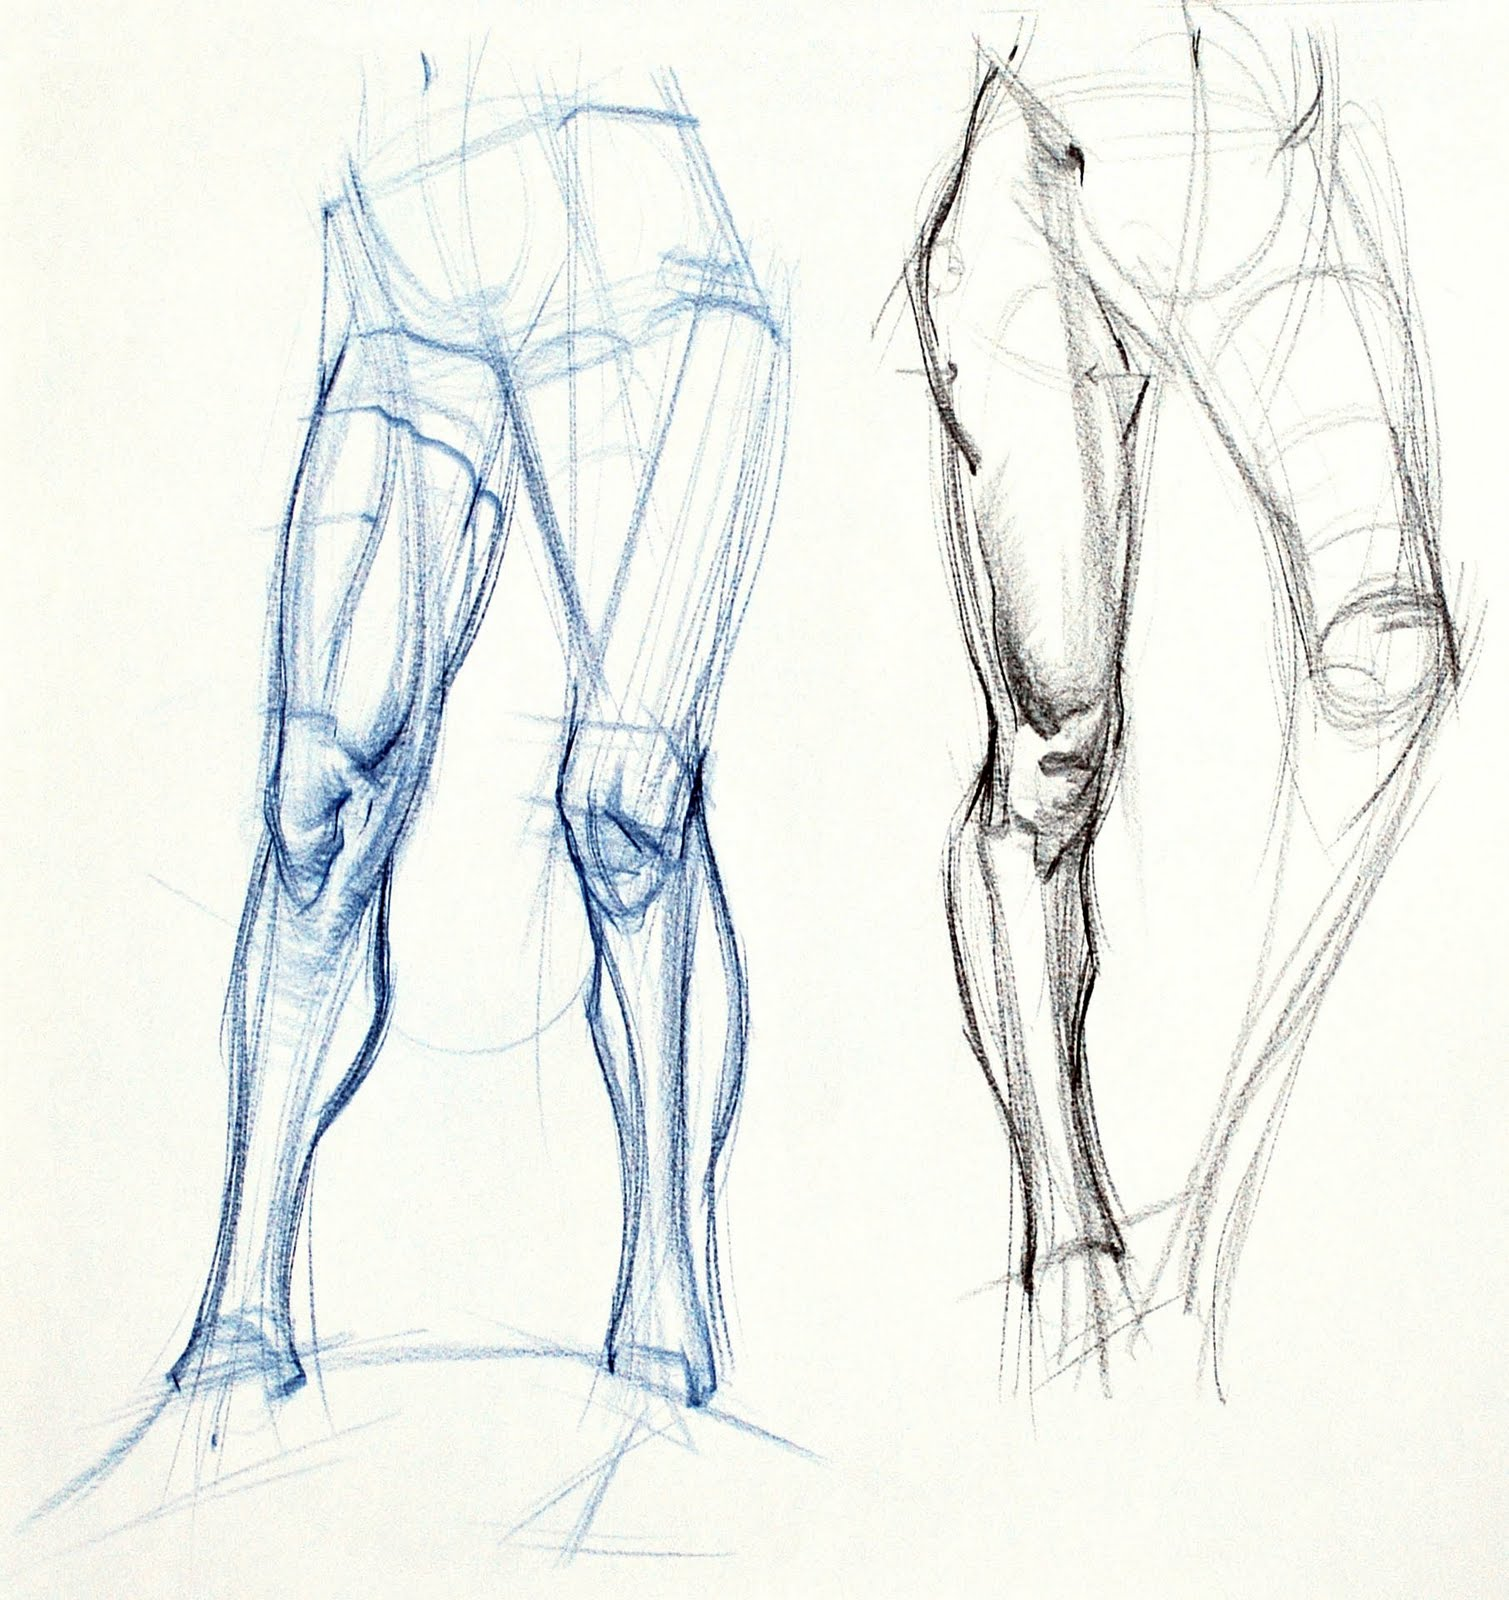 how to draw legs running in a sketch